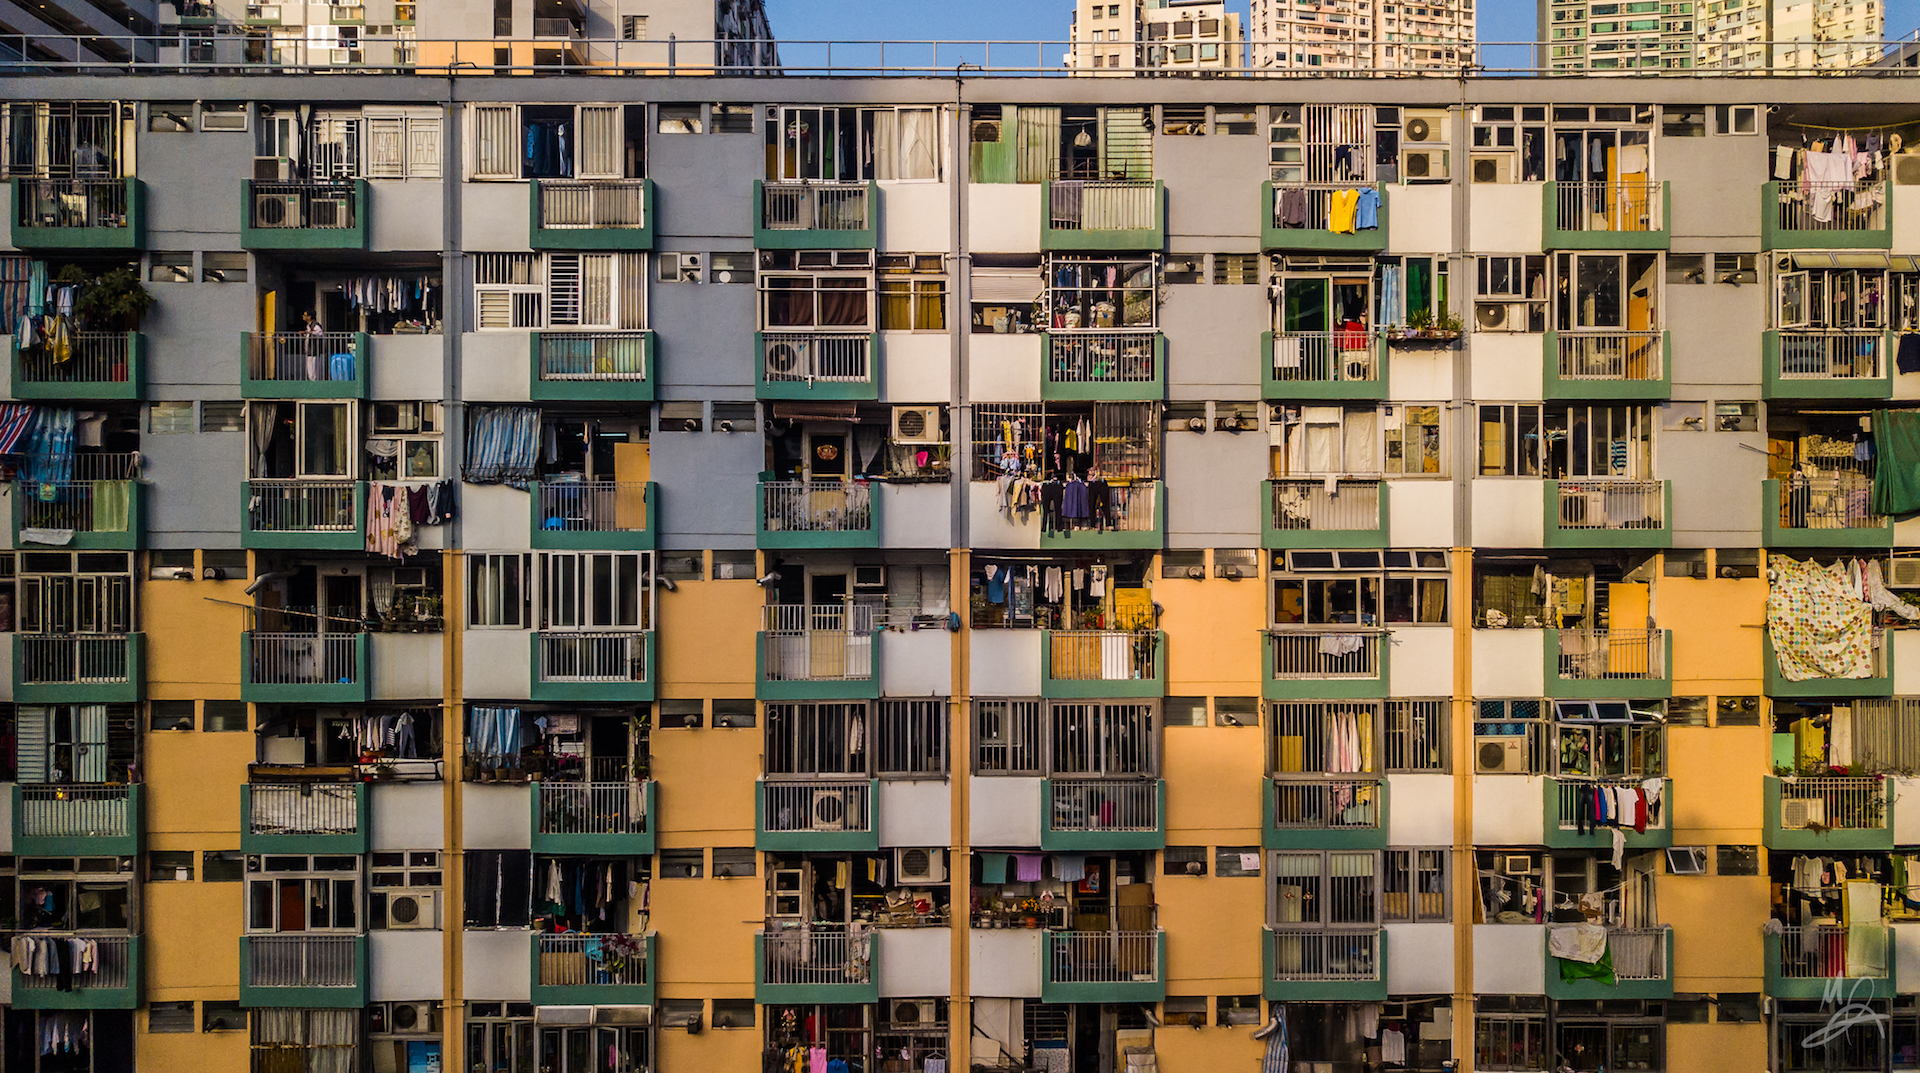 Hong Kong public housing estate - landscape 5/5